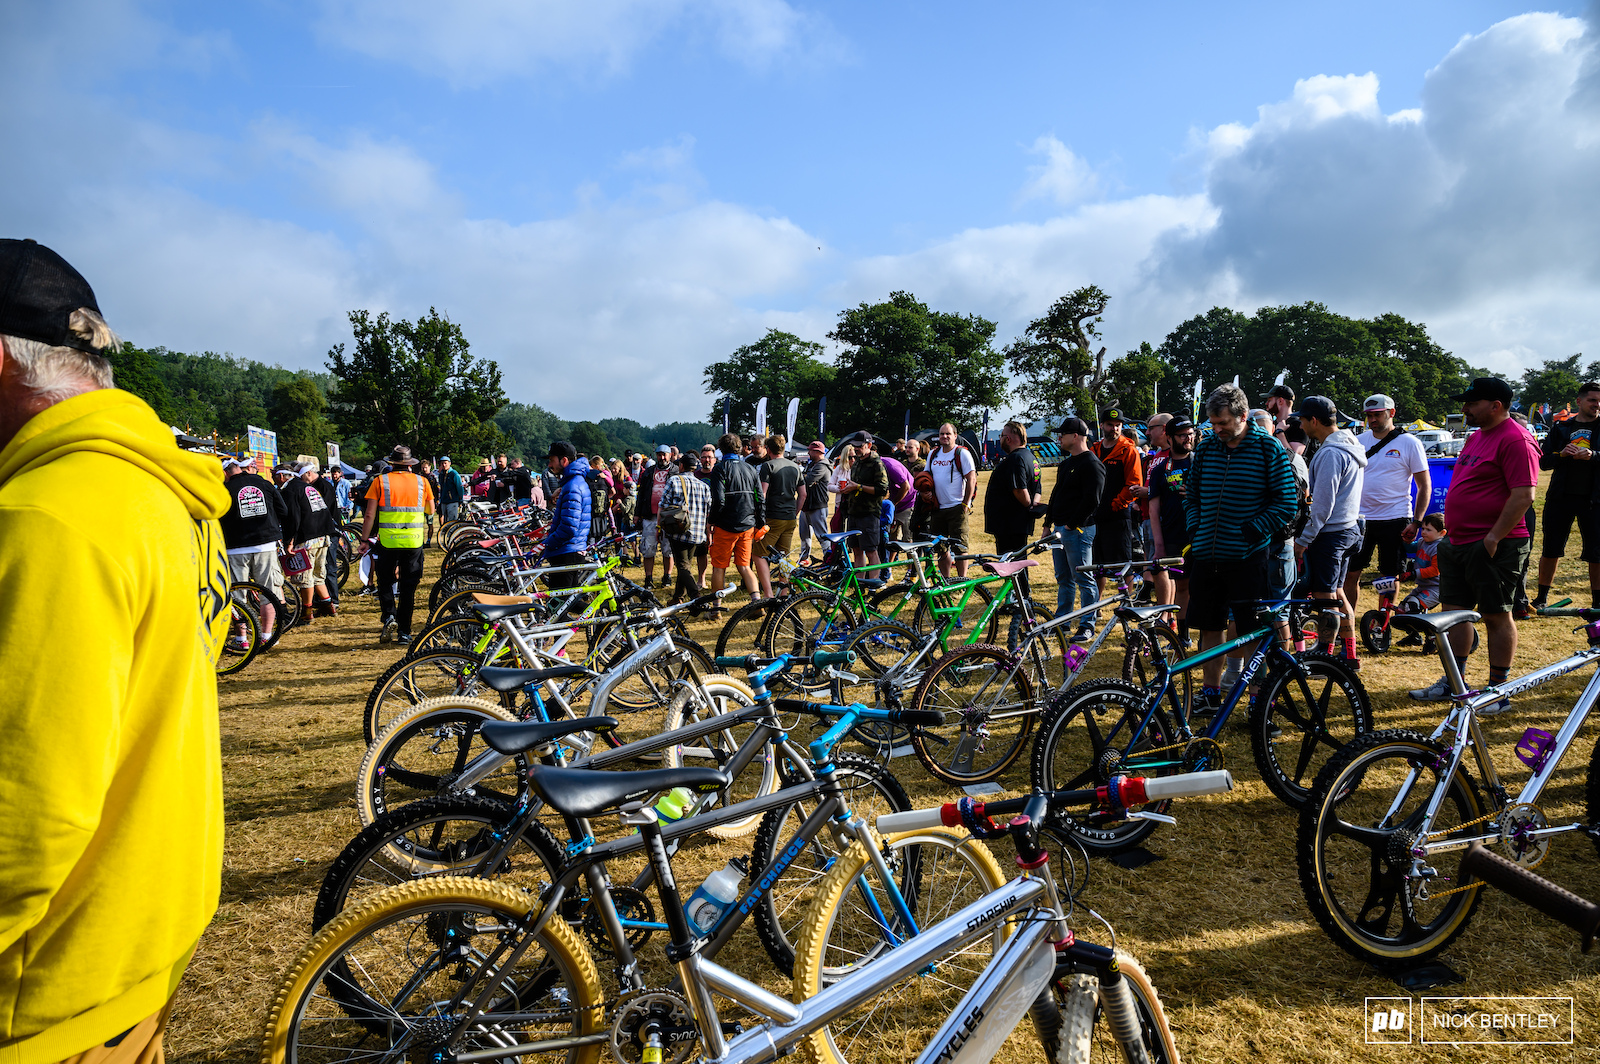 All these amazing retro bikes drew a big crowd even though it was early after a big night at the Malverns Classic